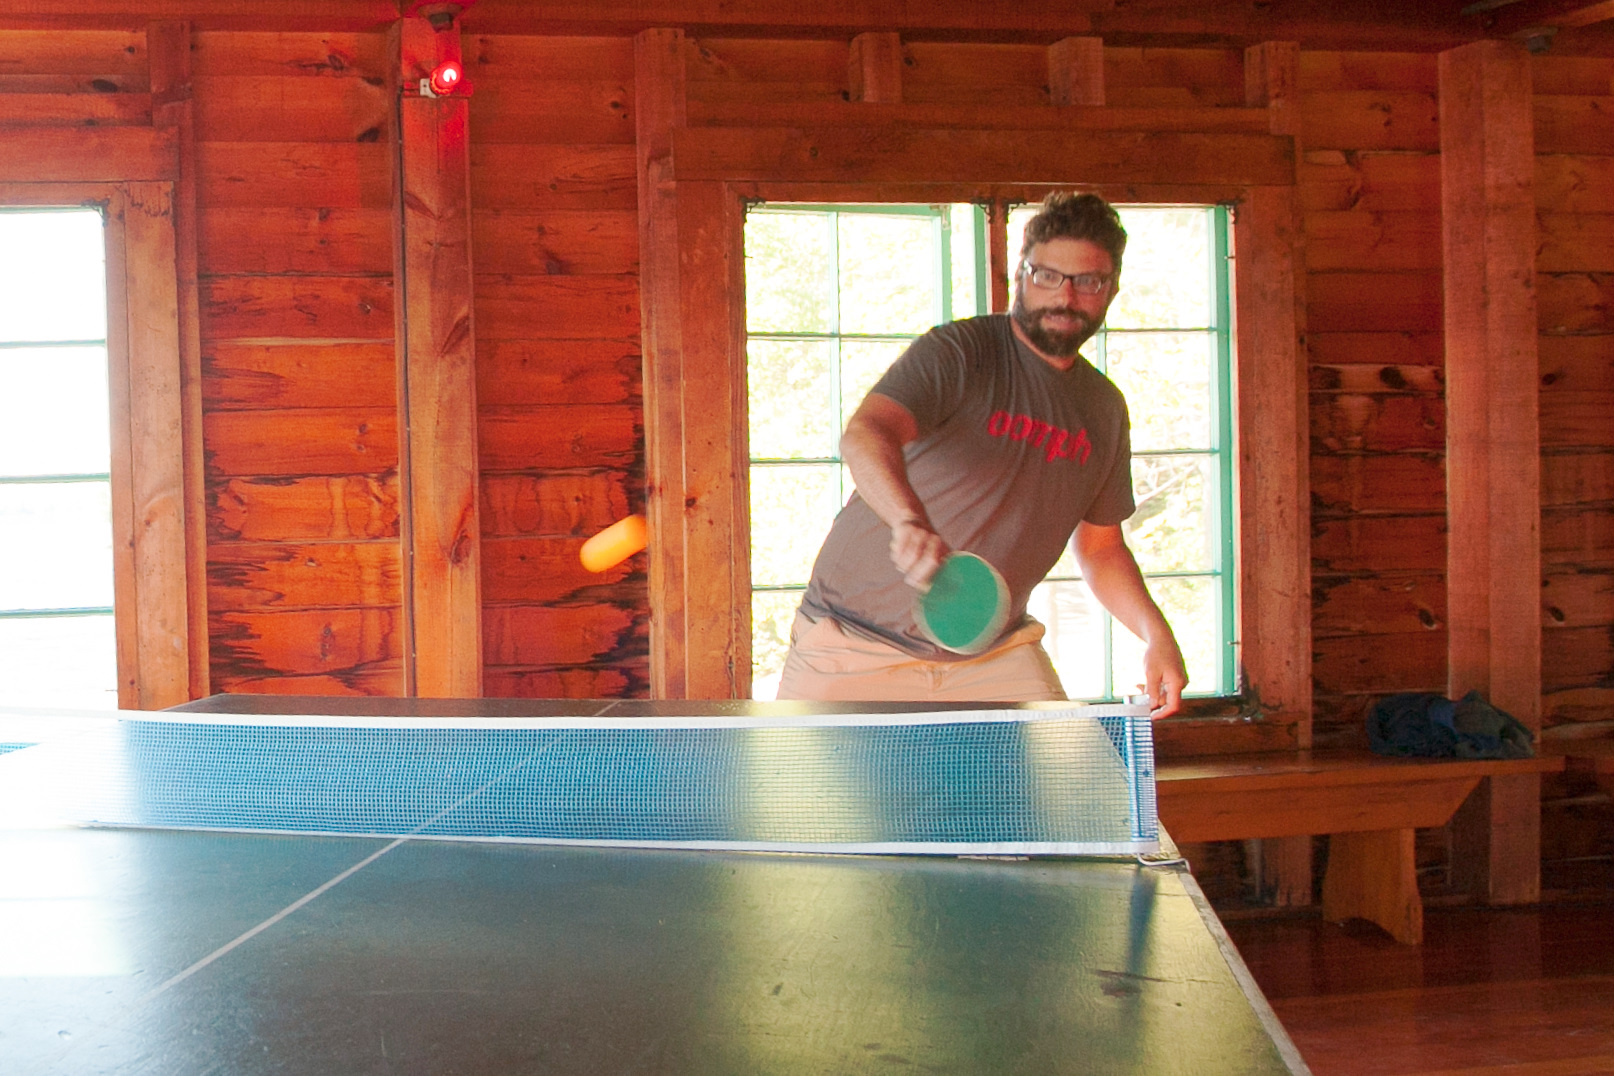 PingPong-crop+lighten.jpg